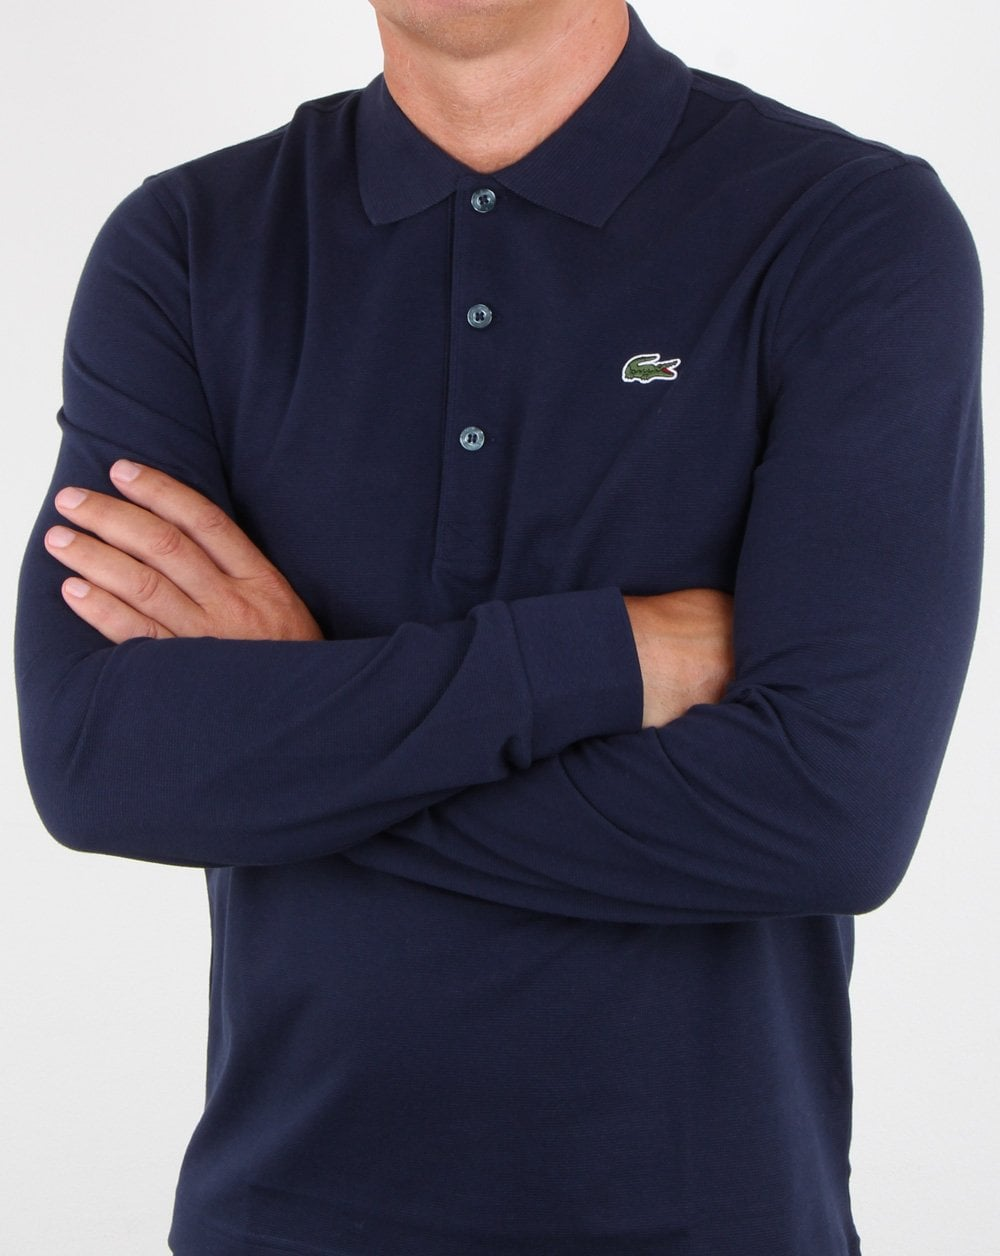 Lacoste Polo Long Sleeve Navy Navy Lacoste Polo Sleeve Long 5RScj4qL3A